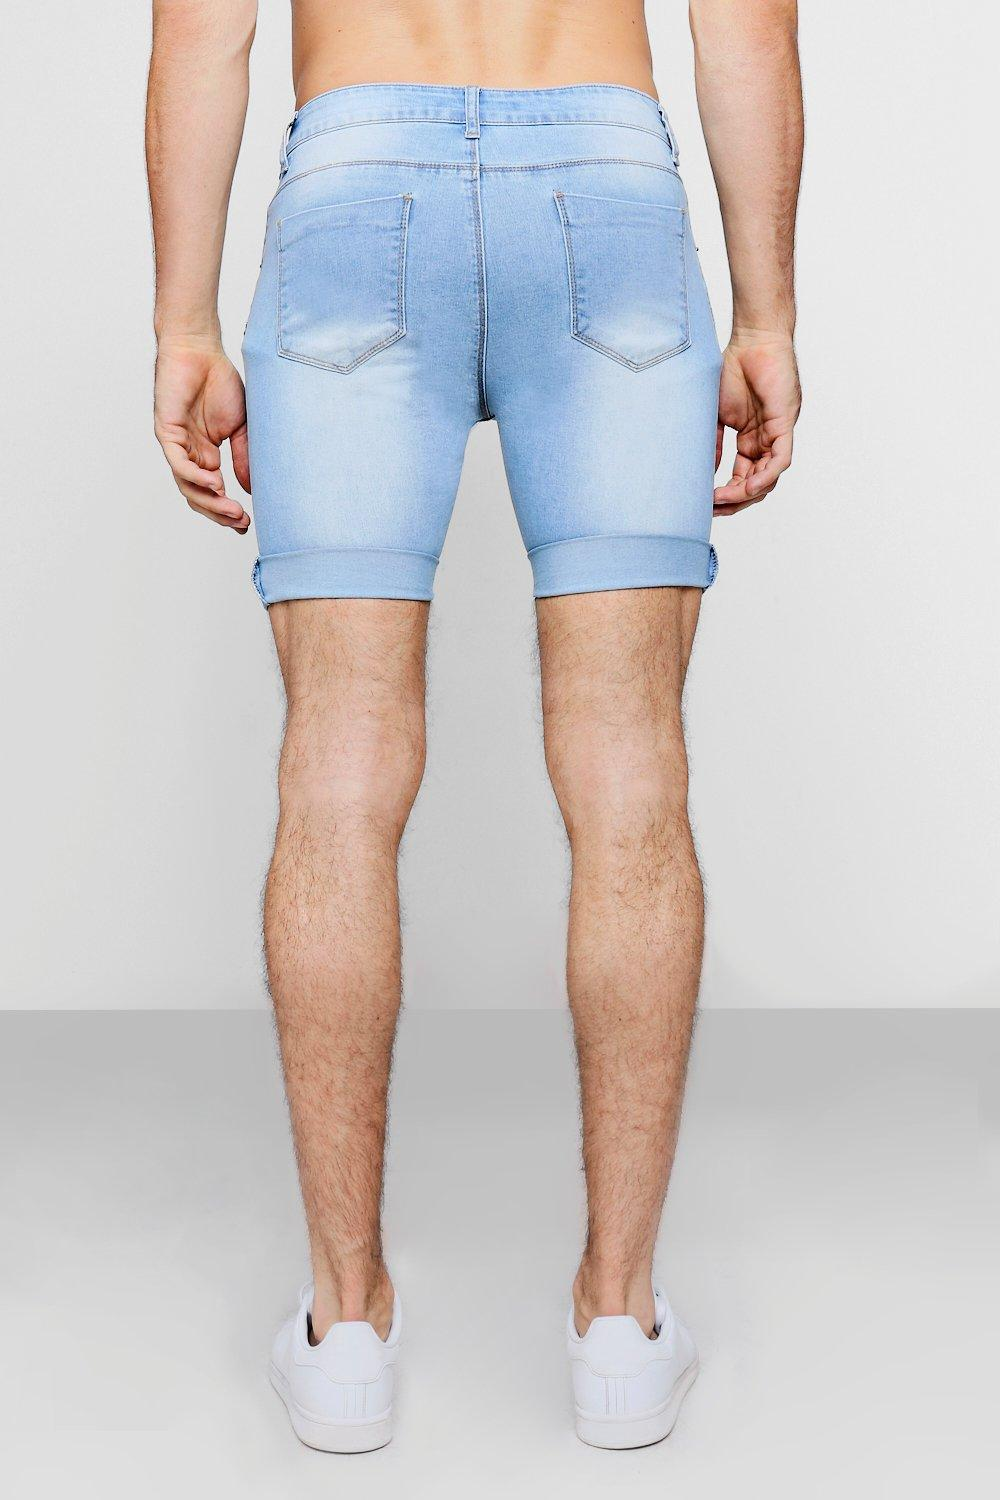 blue Blue Skinny Shorts light Light Super Denim YqvEf